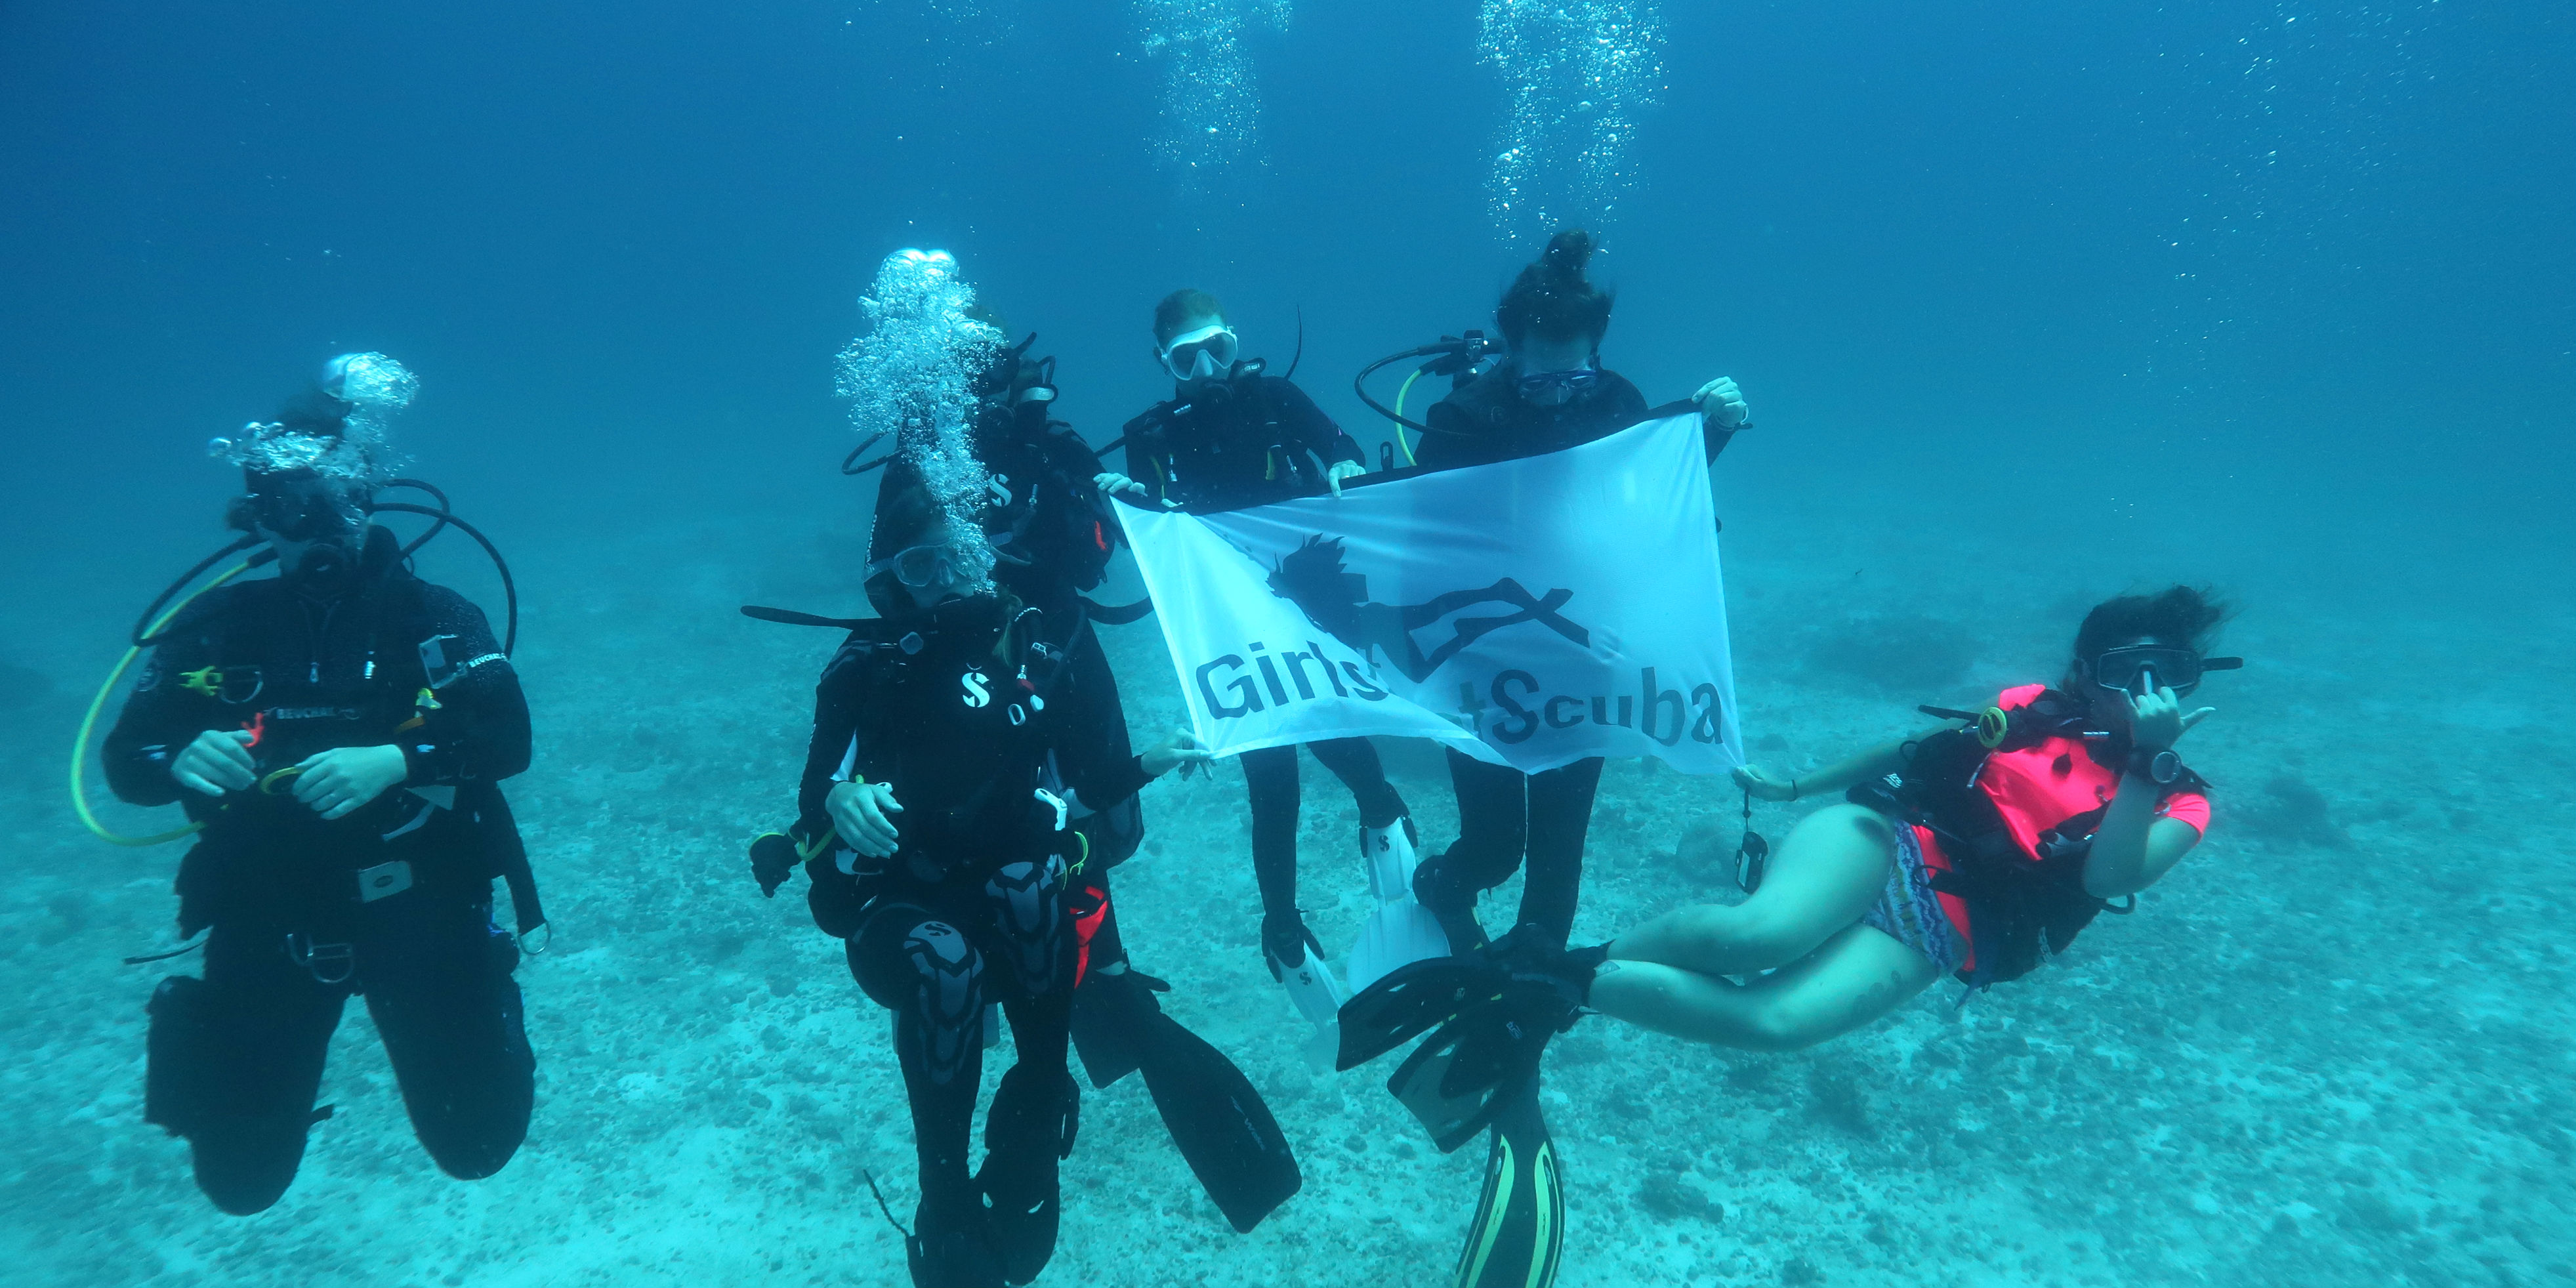 A team of women divers explore the reefs surrounding Mahe while working toward their PADI scuba qualification.